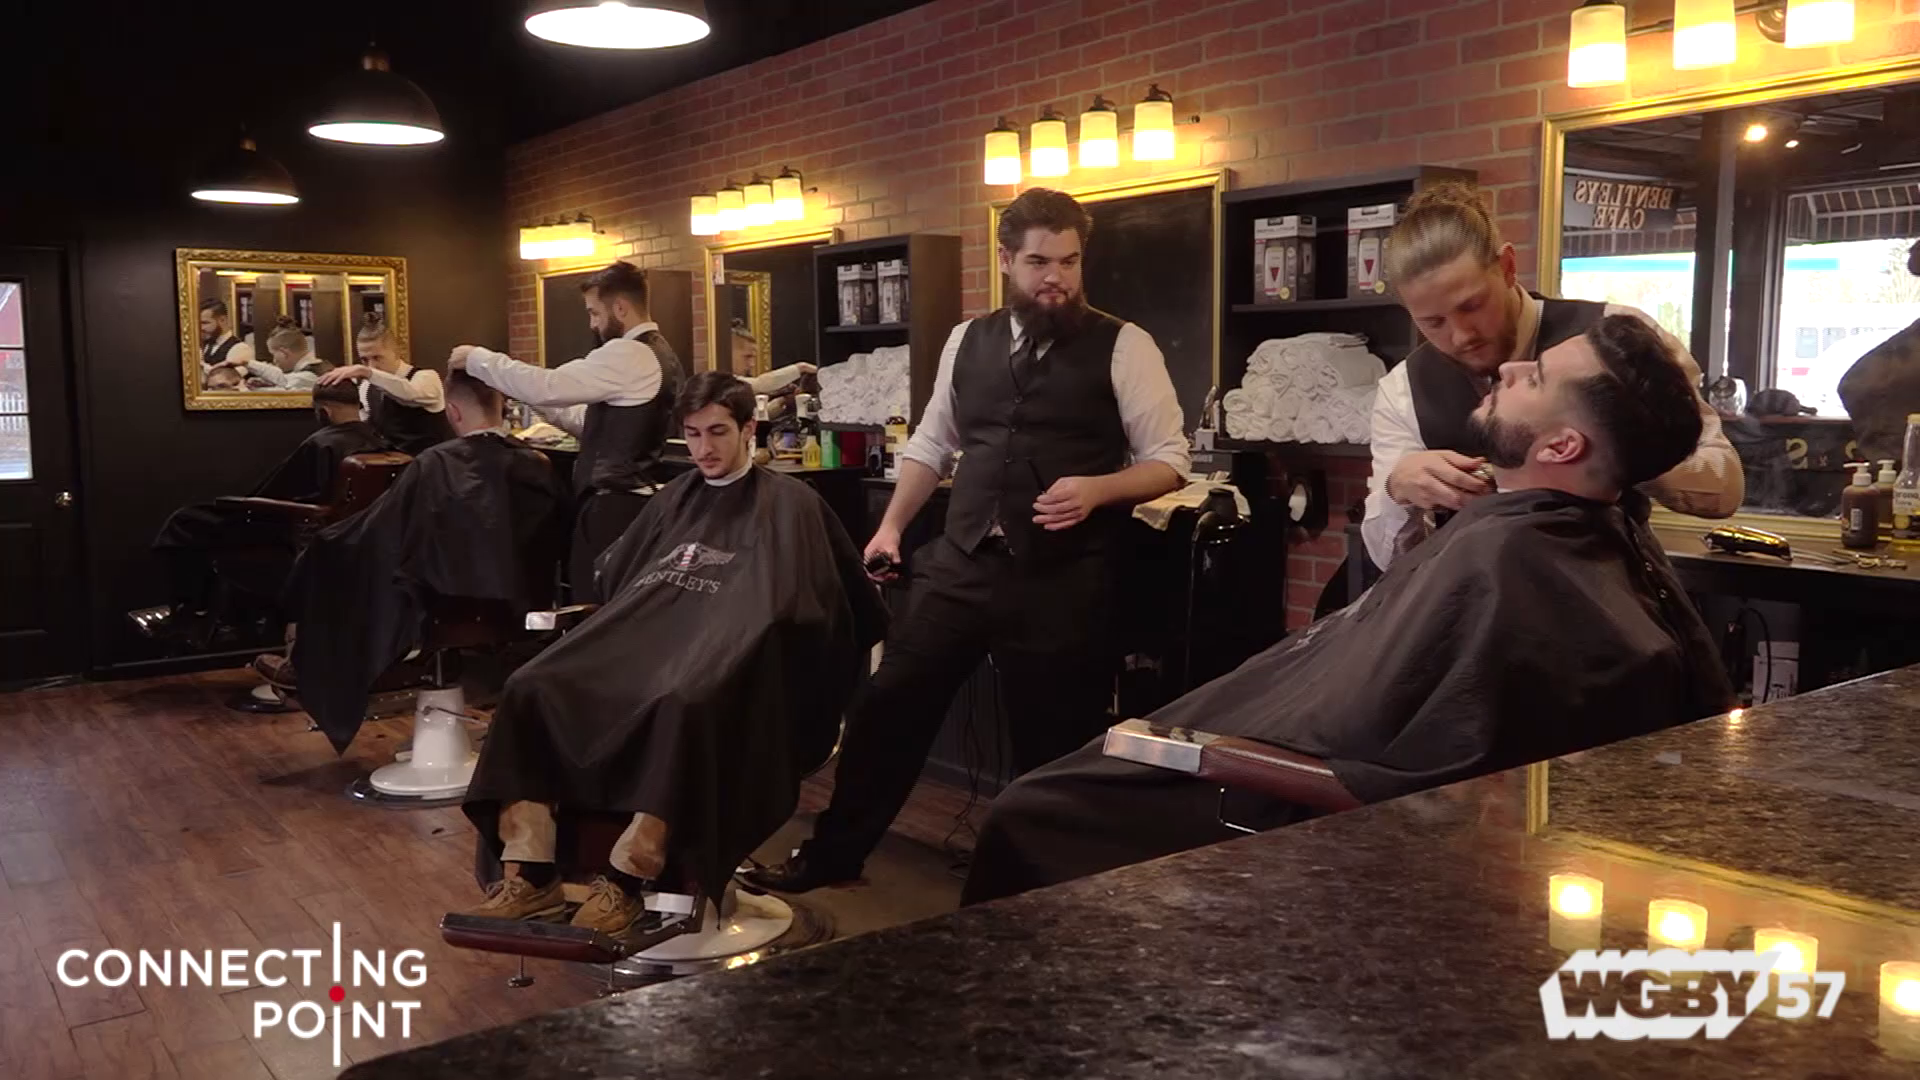 Evan Nyman founded Bentley's Barbershop in Springfield, MA with a goal of changing the perception of your typical barbershop. His barbers, dressed in three-piece black suits, set the bar high, but their commitment to a high-class experience doesn't end there.